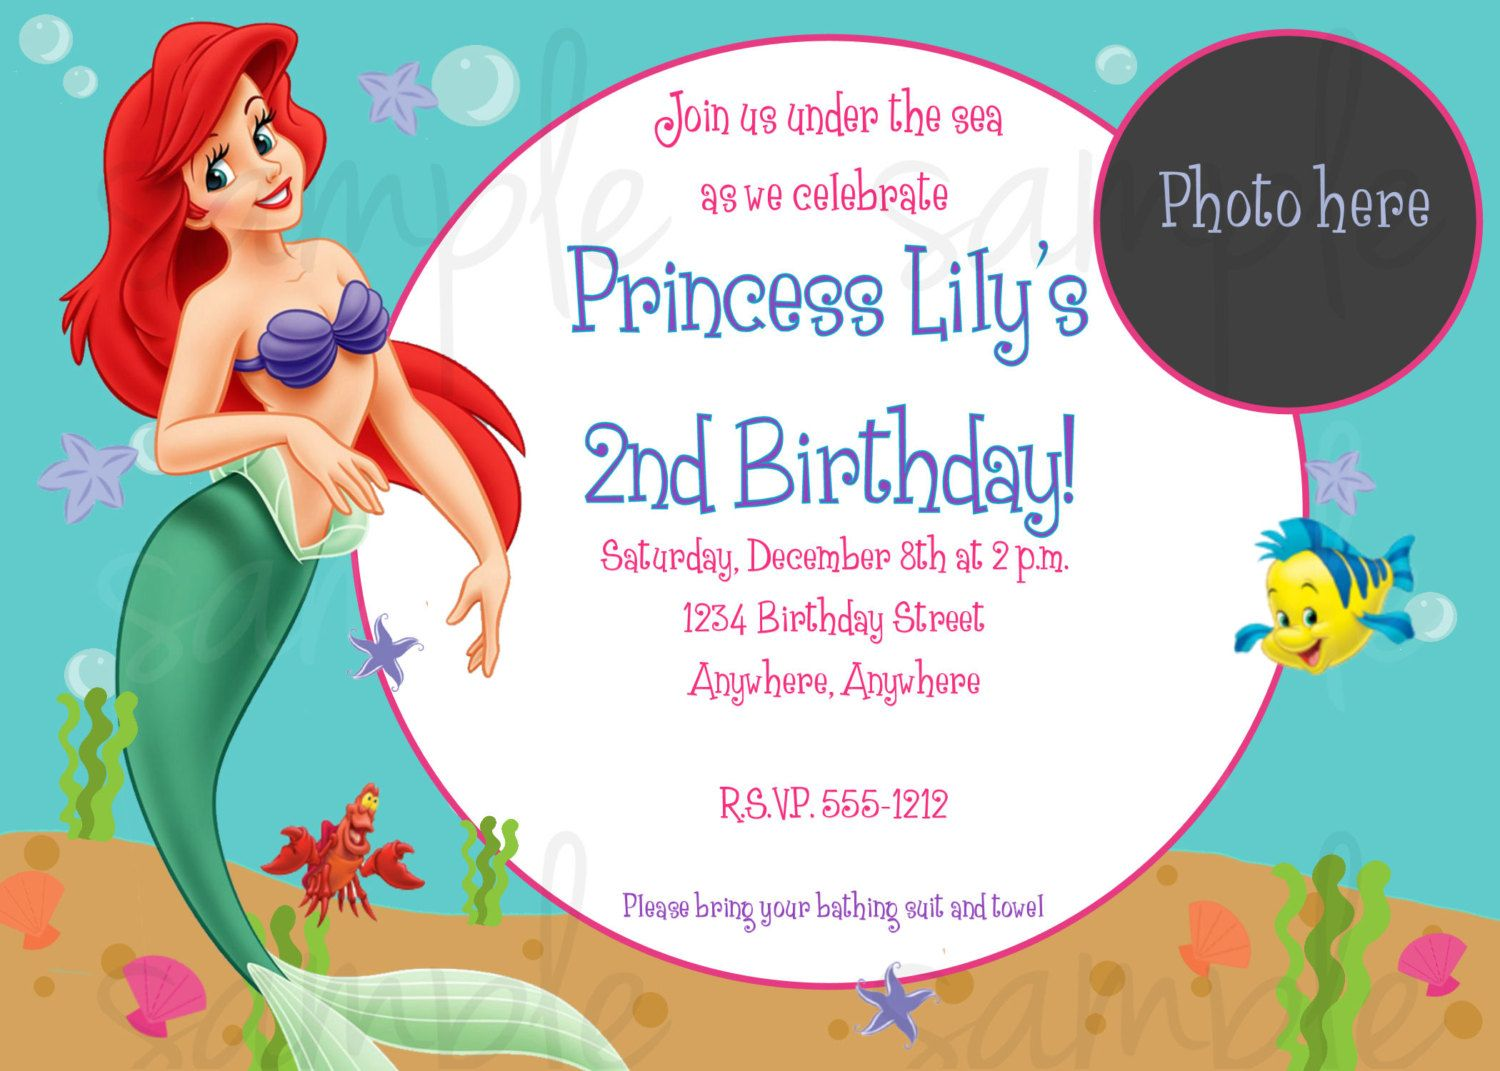 Fine 1 Year Experience Resume In Java J2ee Small 10 Minute Resume Builder Regular 15 Year Old Resume Example 1920s Newspaper Template Old 2 Page Resume Too Long Fresh2014 June Calendar Template The Little Mermaid Birthday Invitation Templates | Invitations For ..